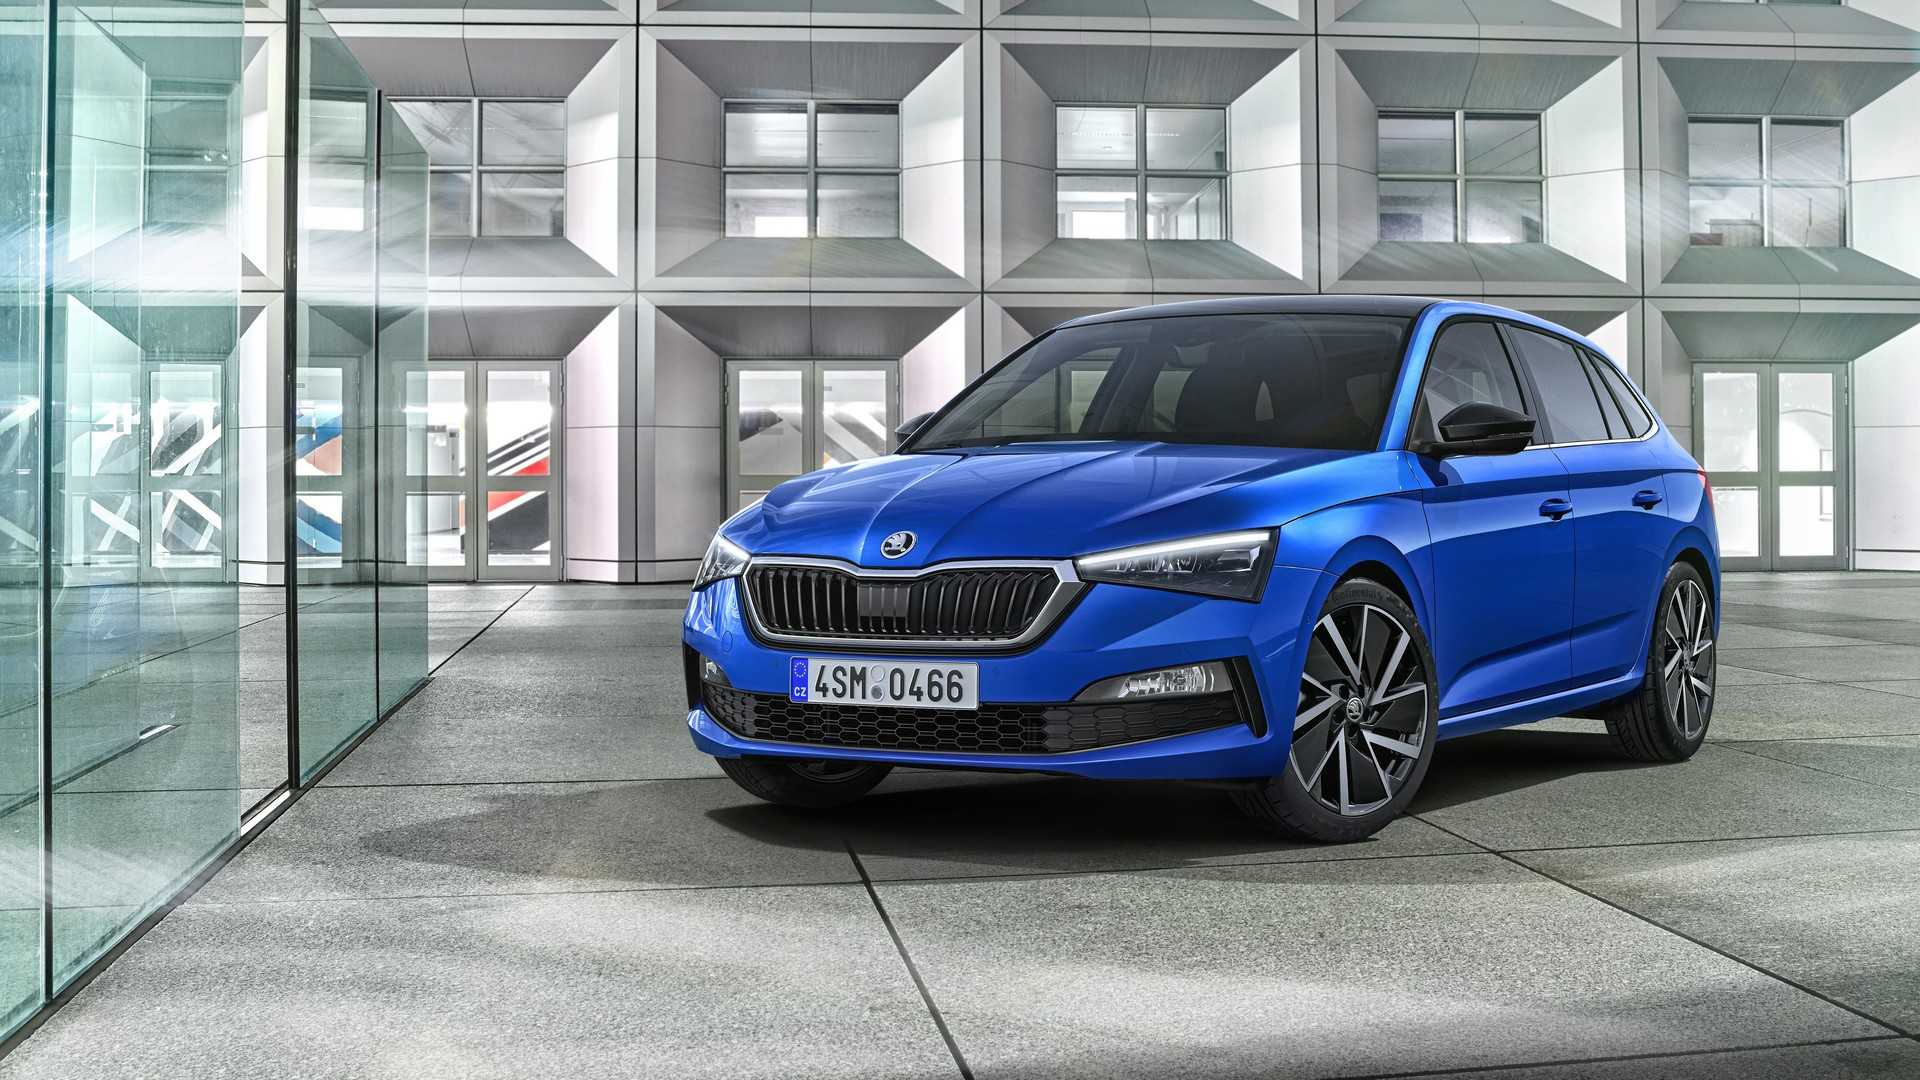 Skoda Scala Hatchback Revealed, India Launch Unclear